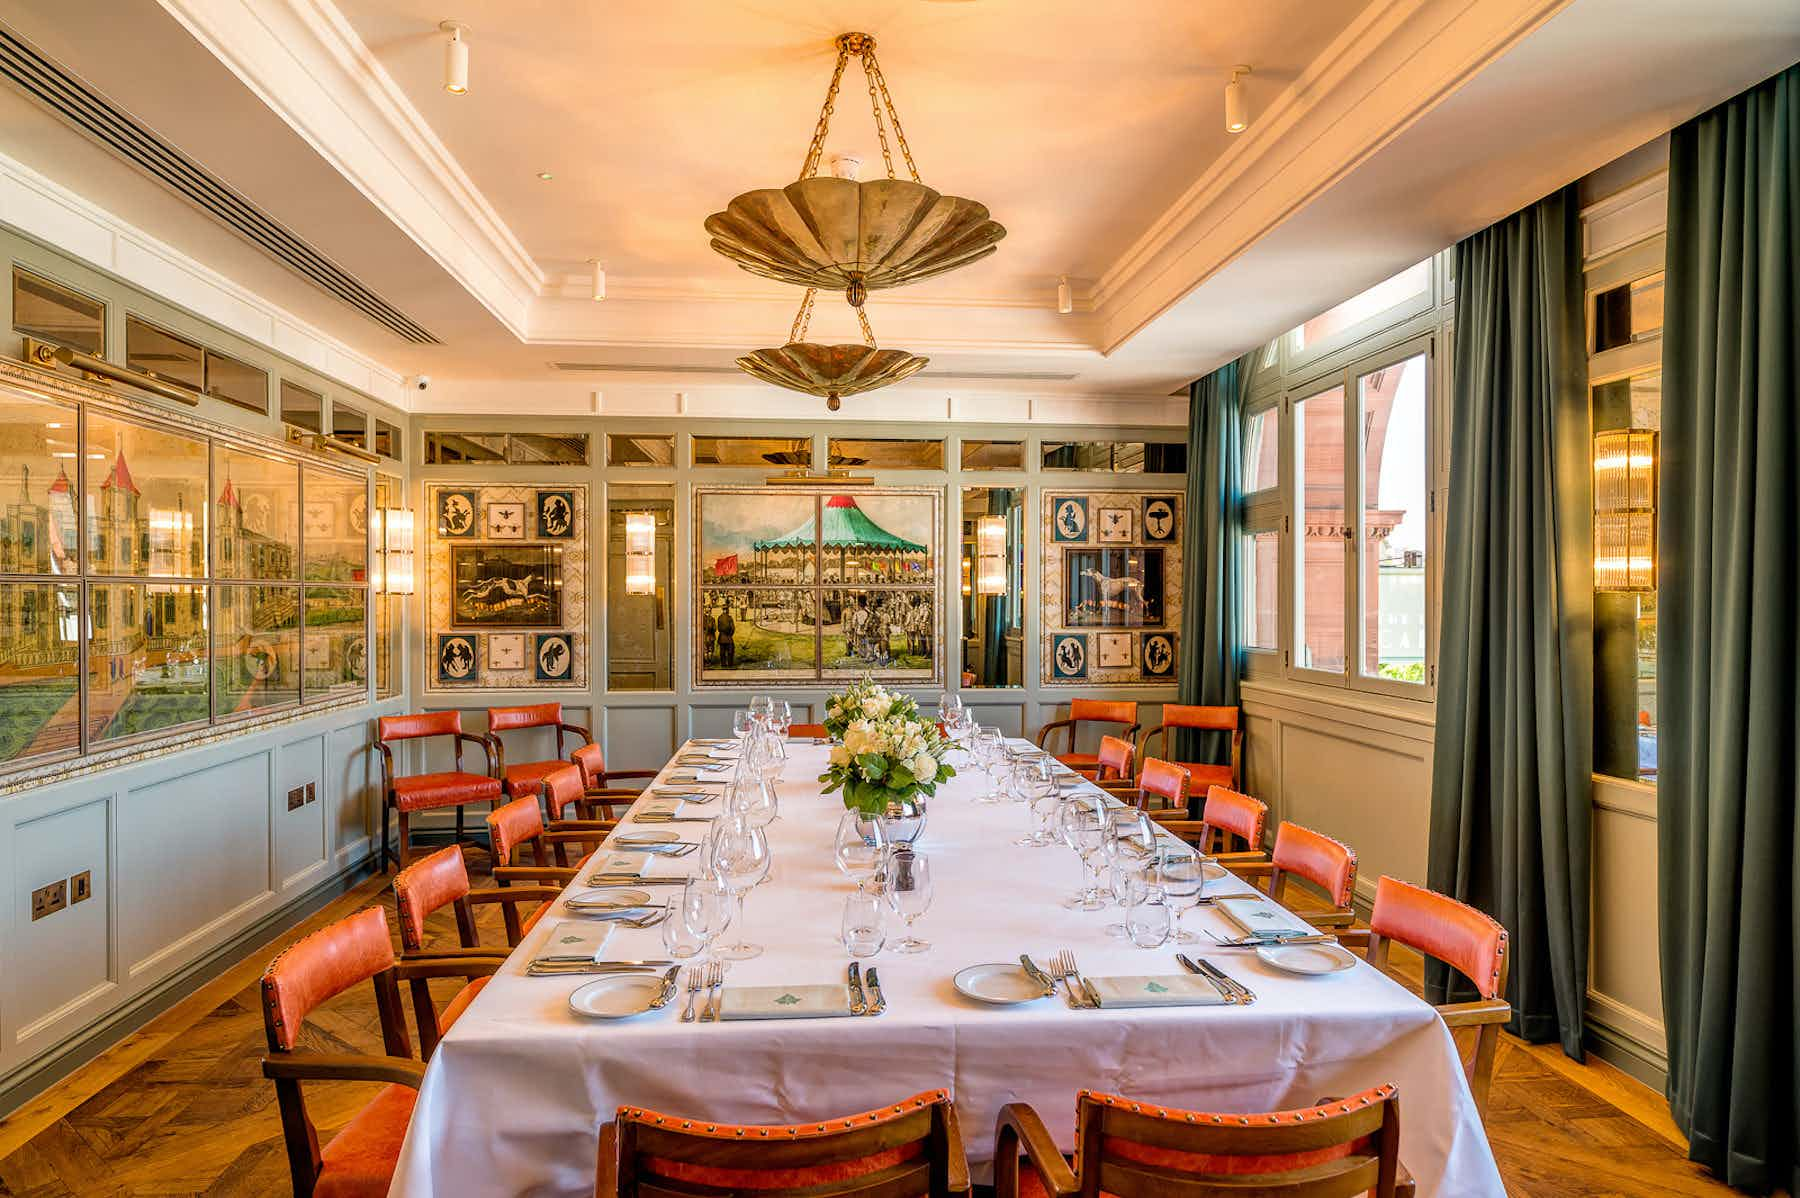 The Danby Room, The Ivy Cafe Wimbledon